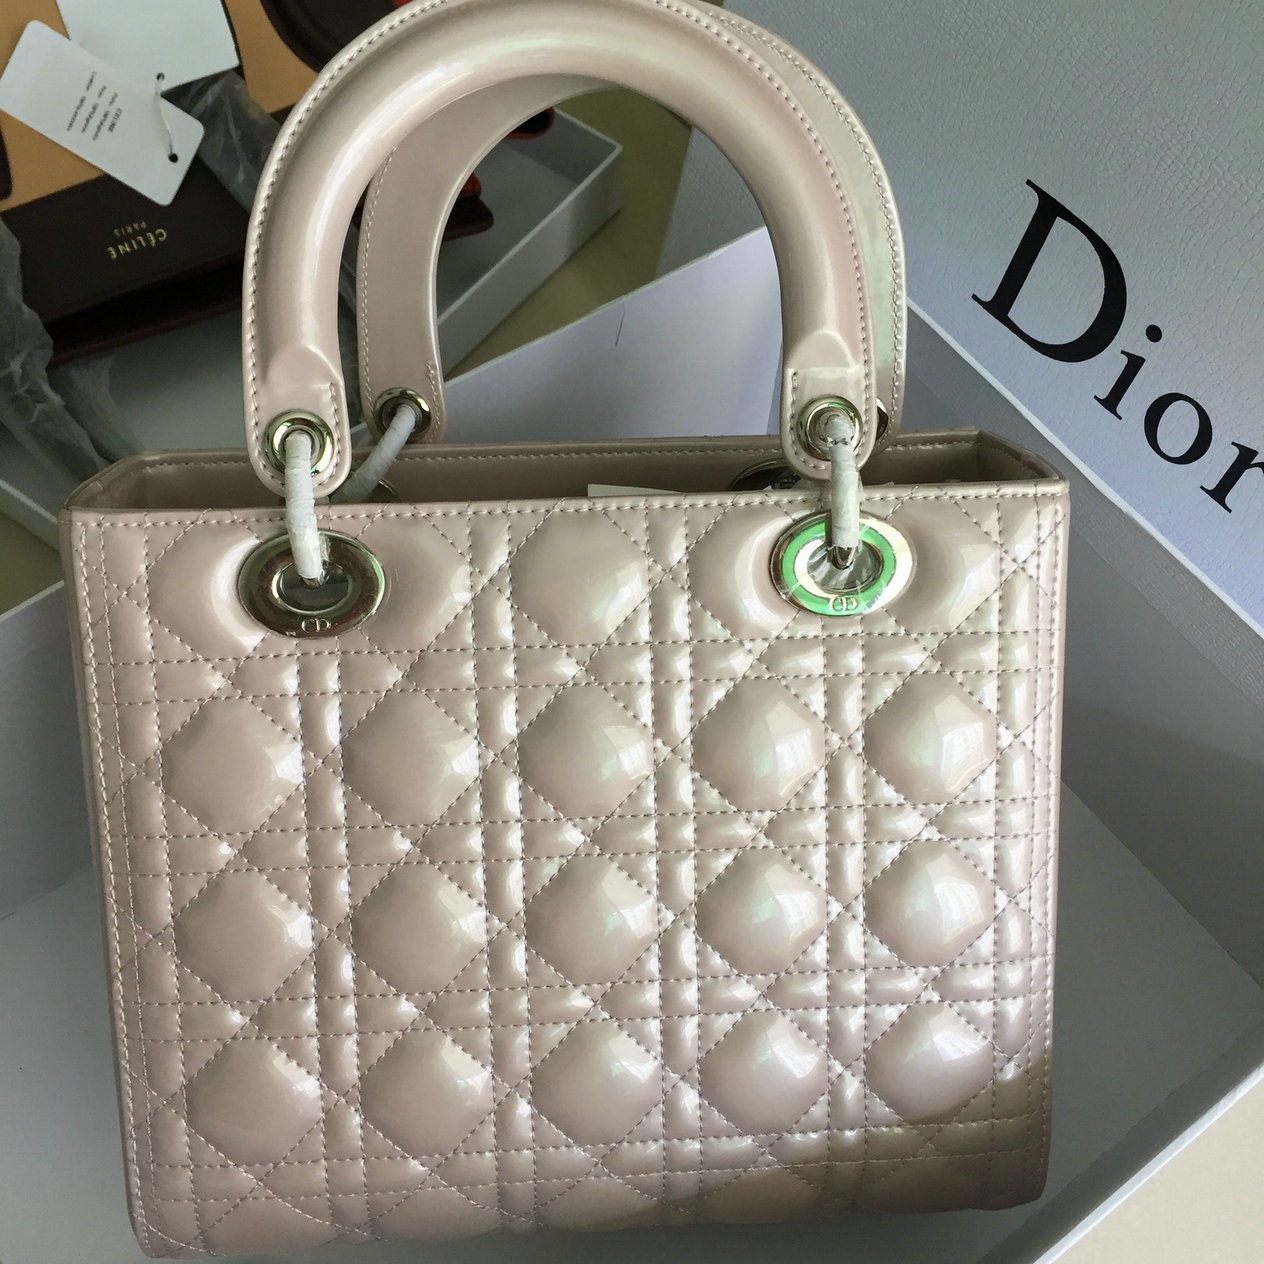 f6e2f2778976 Pre shipment Photos of Christian Dior Lady Dior bag 24CM in Patent Leather  pearl grey best original quality